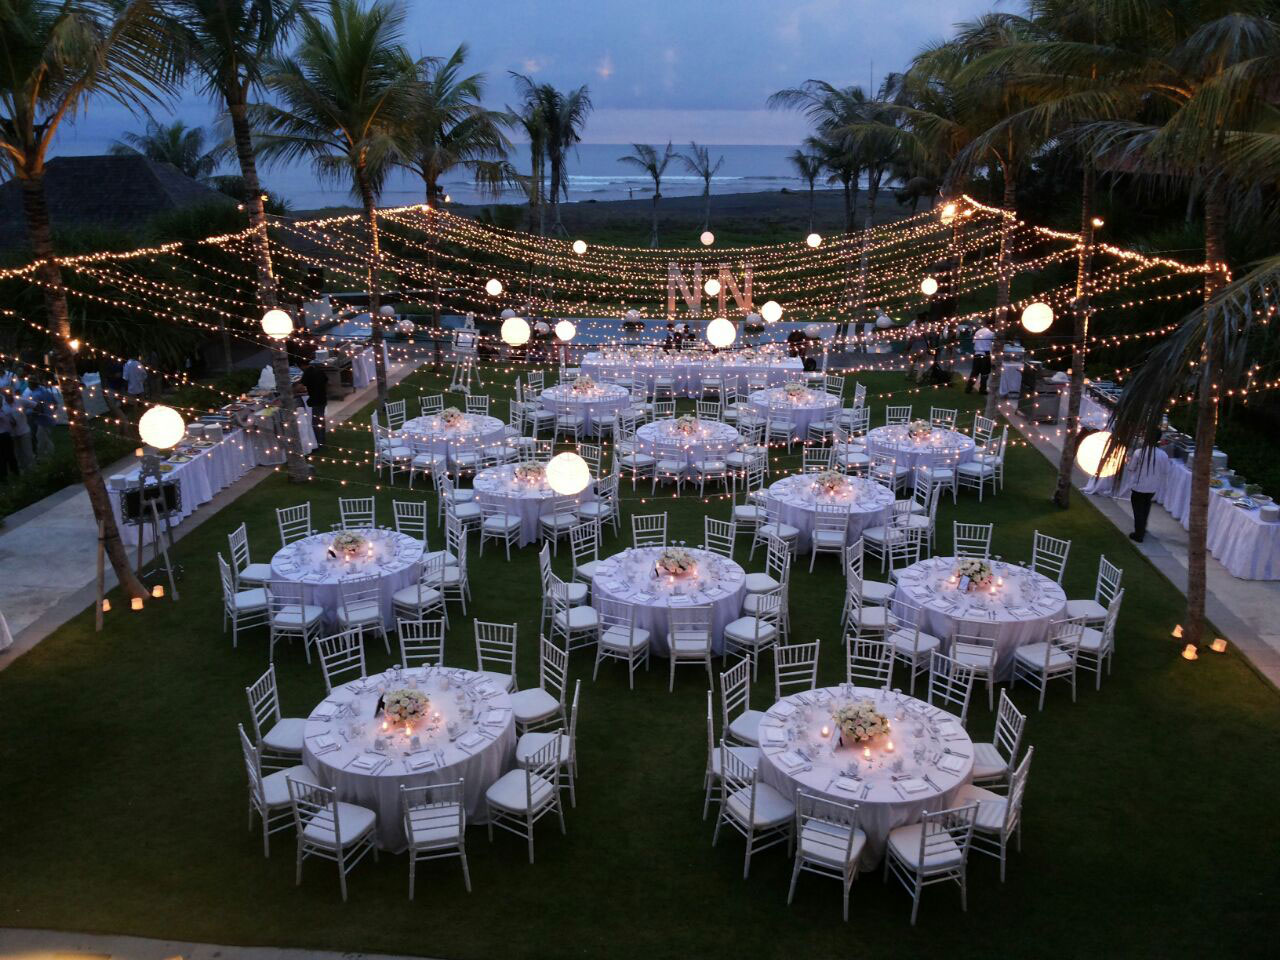 Jeeva villa bali wedding venue bali shuka wedding for Bali wedding decoration ideas